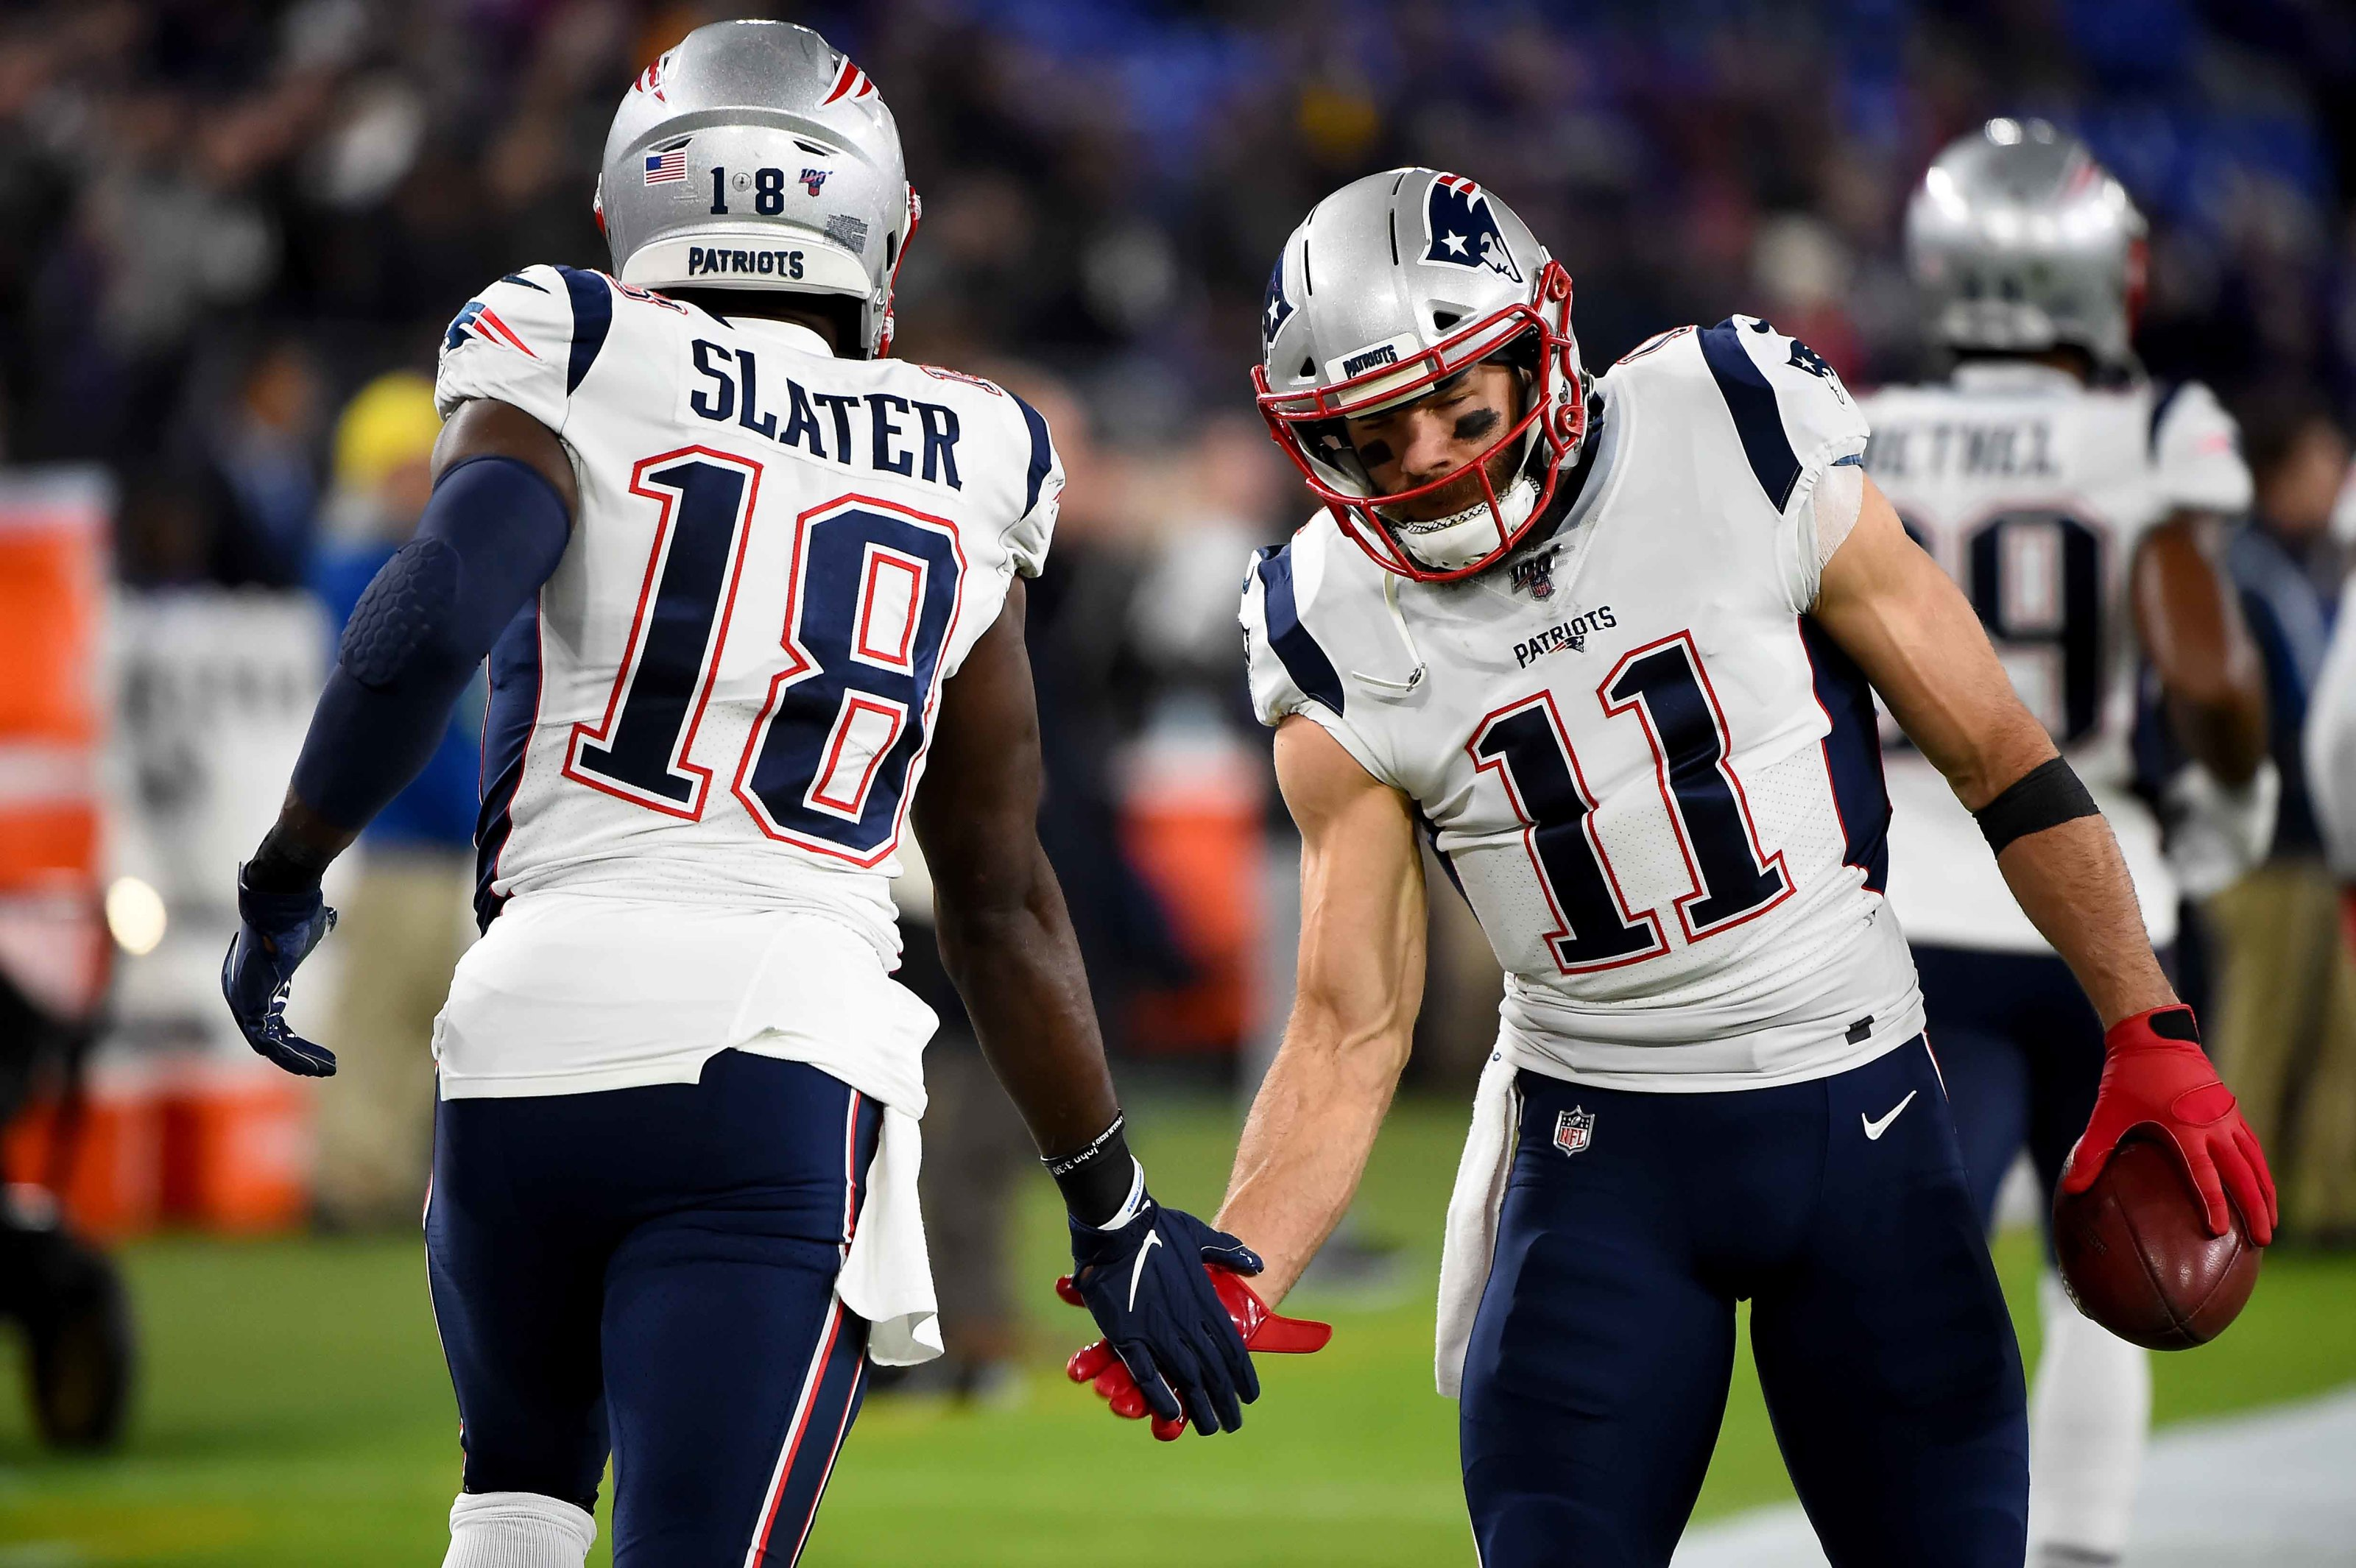 New England Patriots: Re-signing Matthew Slater is smart move